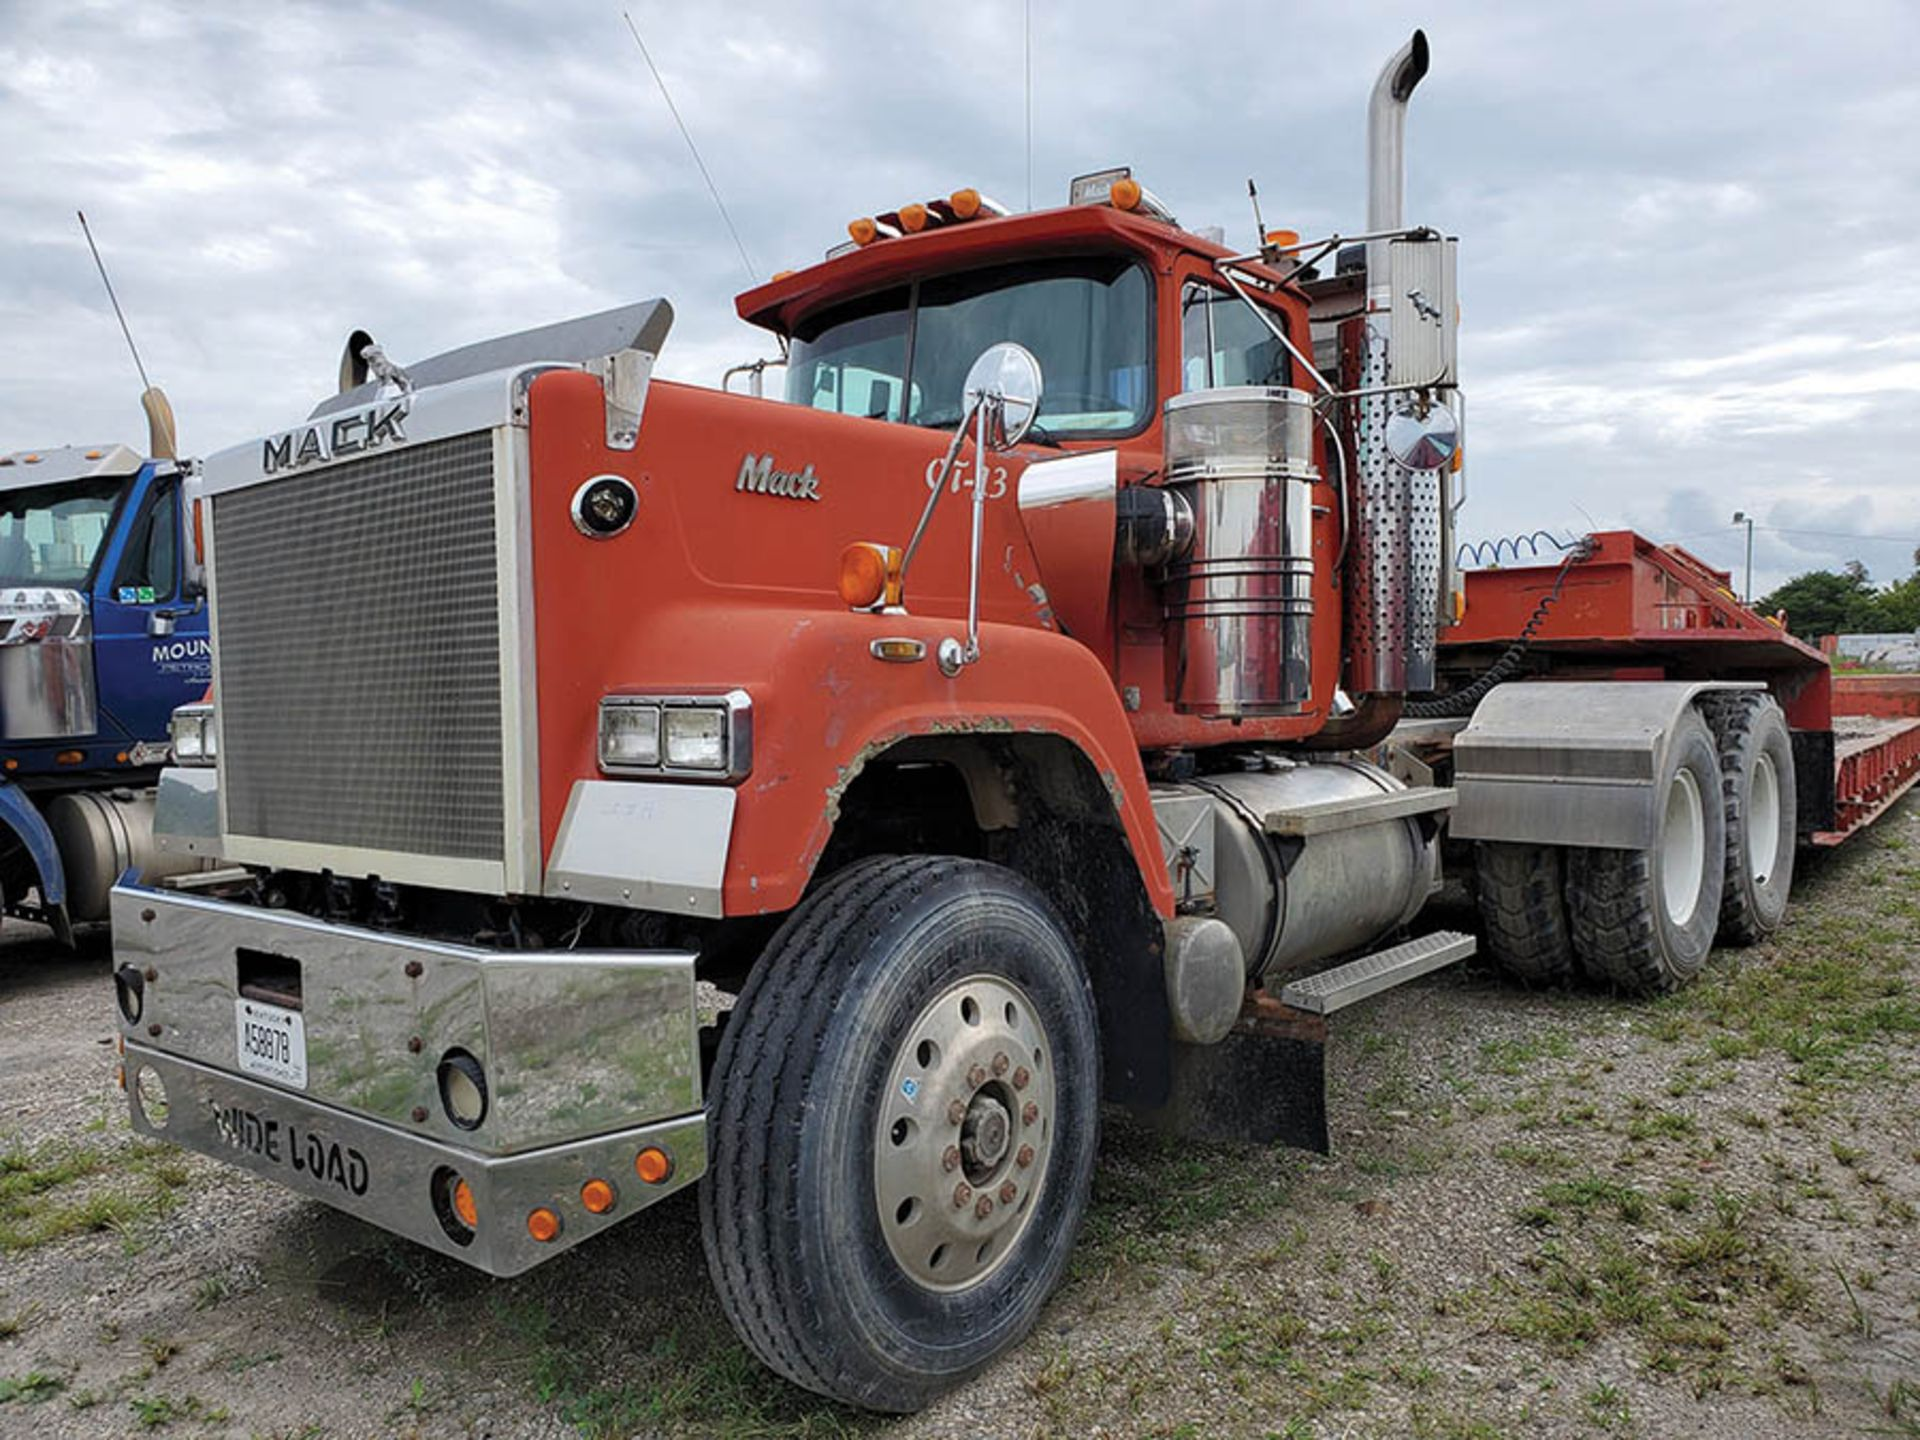 Lot 19 - 1991 MACK RW600 T/A DAY CAB TRACTOR, 10-SPEED TRANS WITH DEEP REDUCTION RANGE, WET LINES MACK INLINE